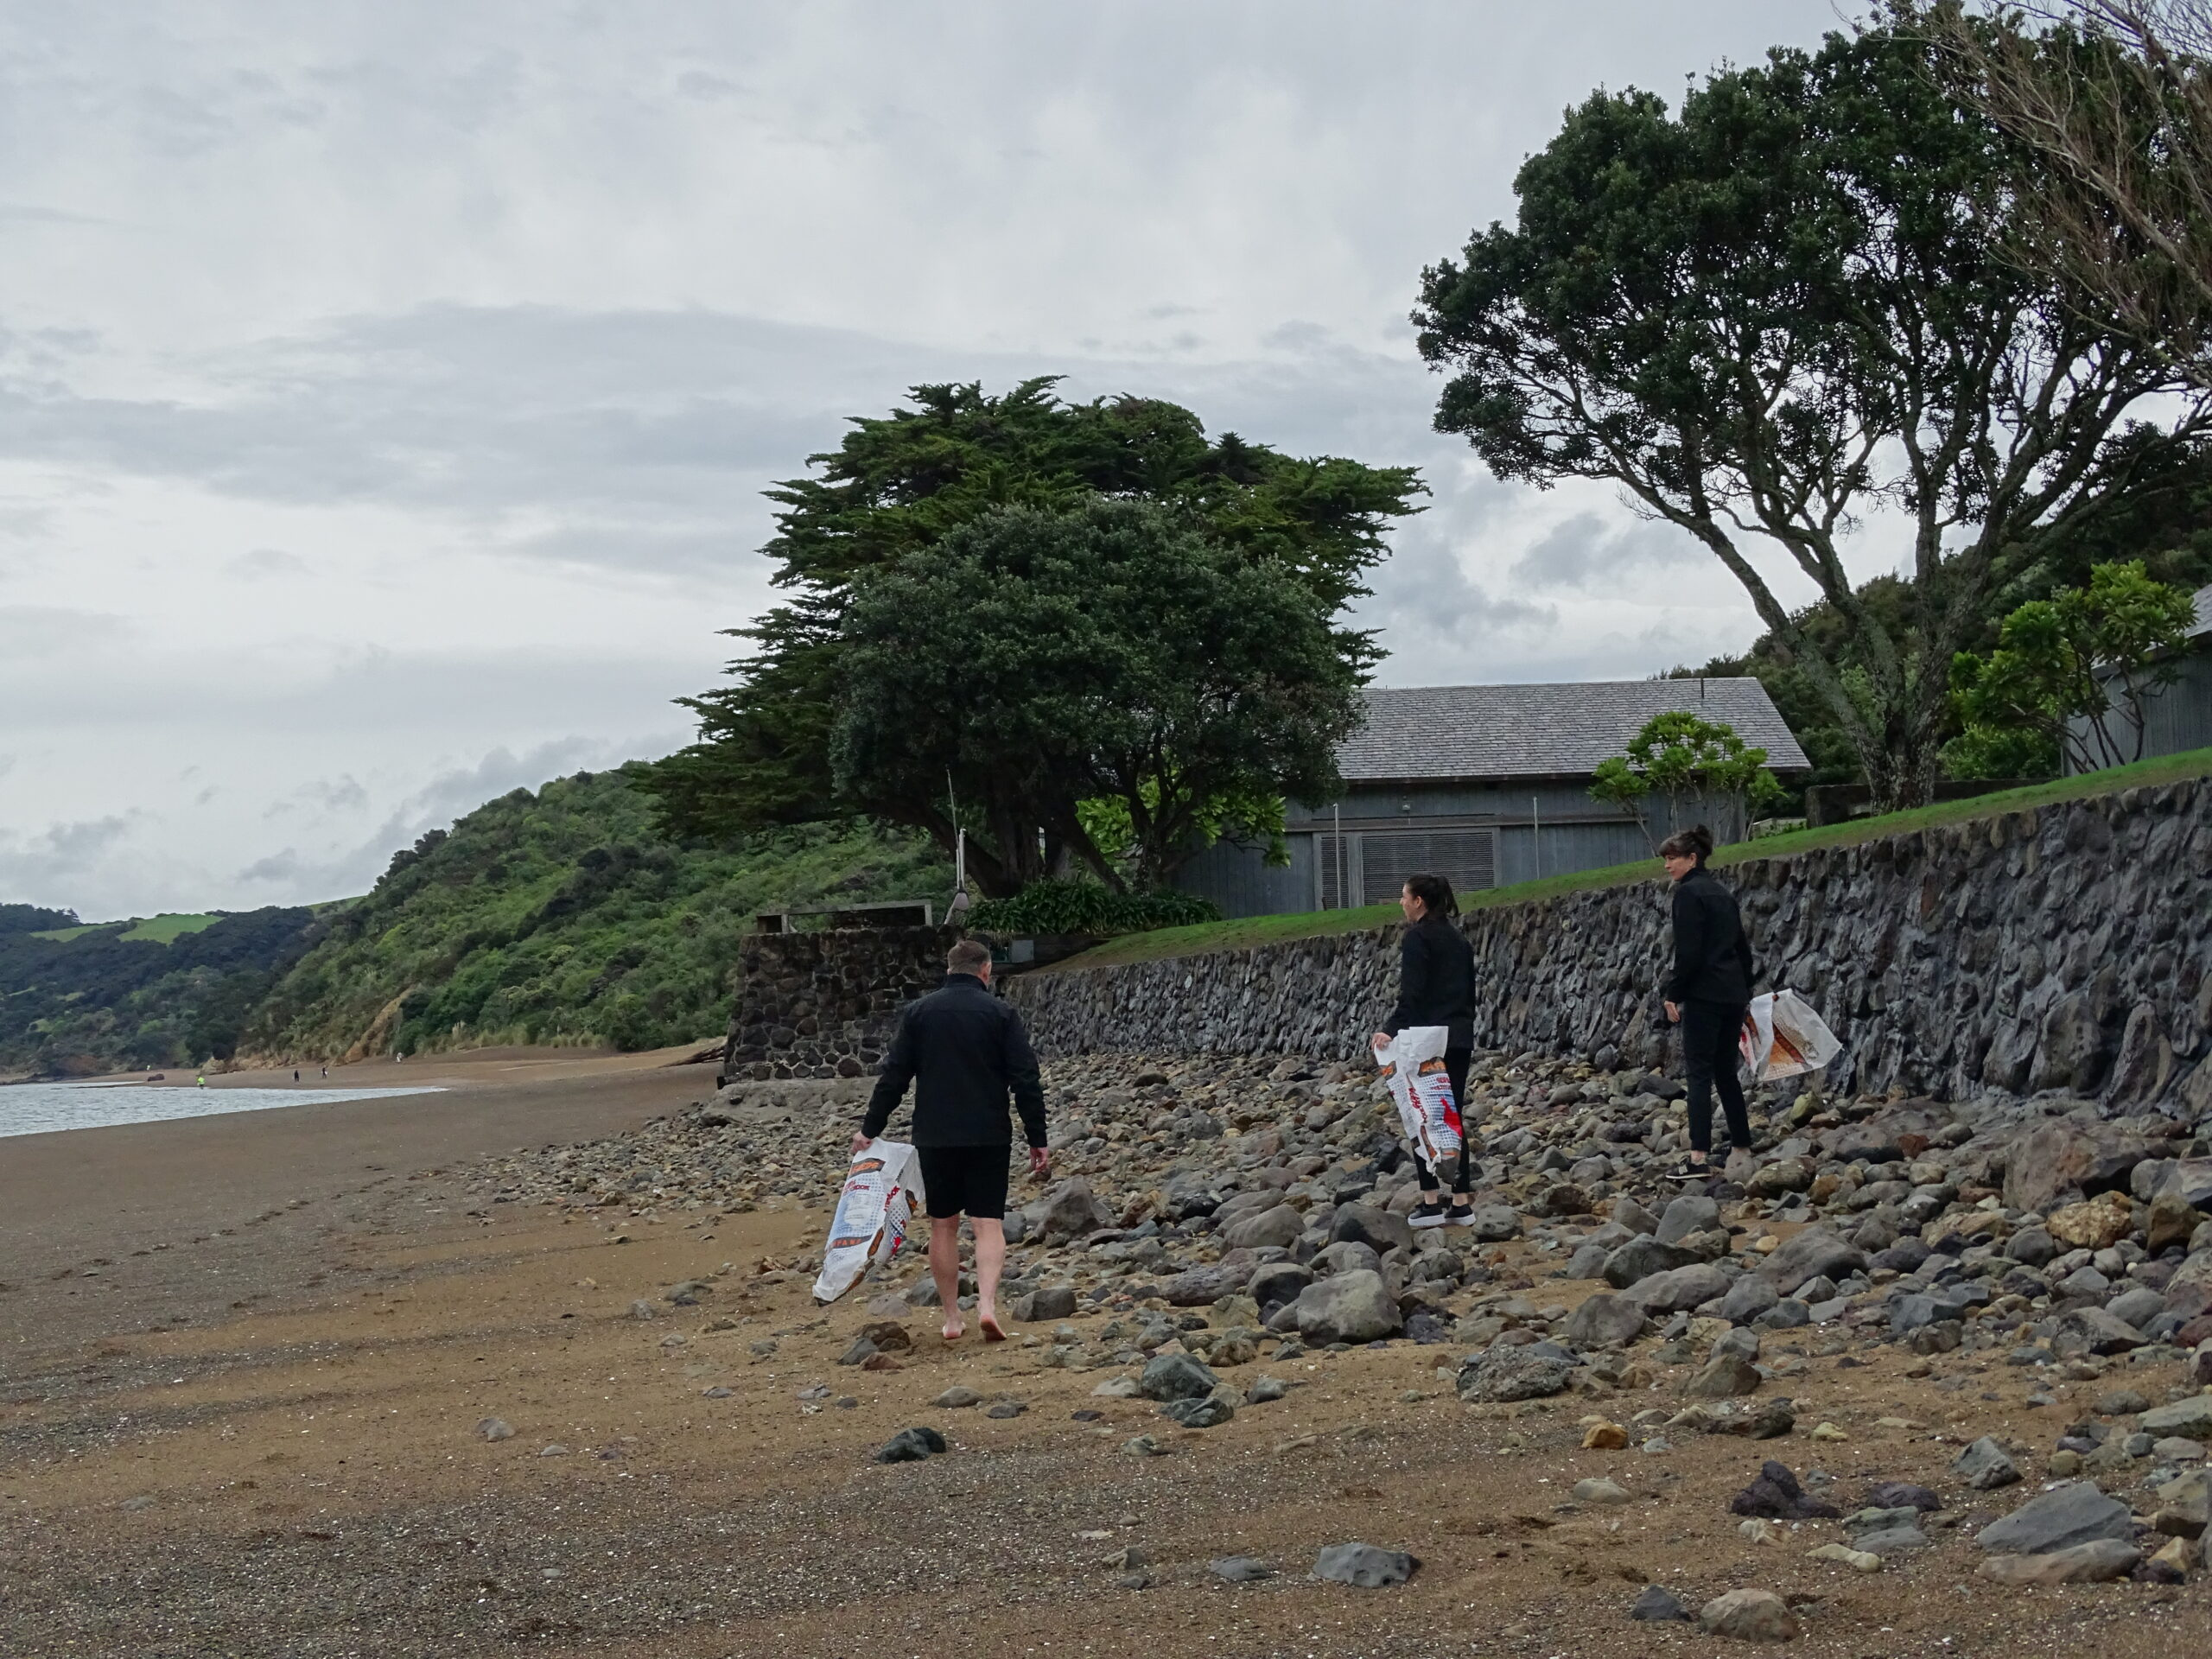 Collecting rubbish from the rock area in front of The Boathouse